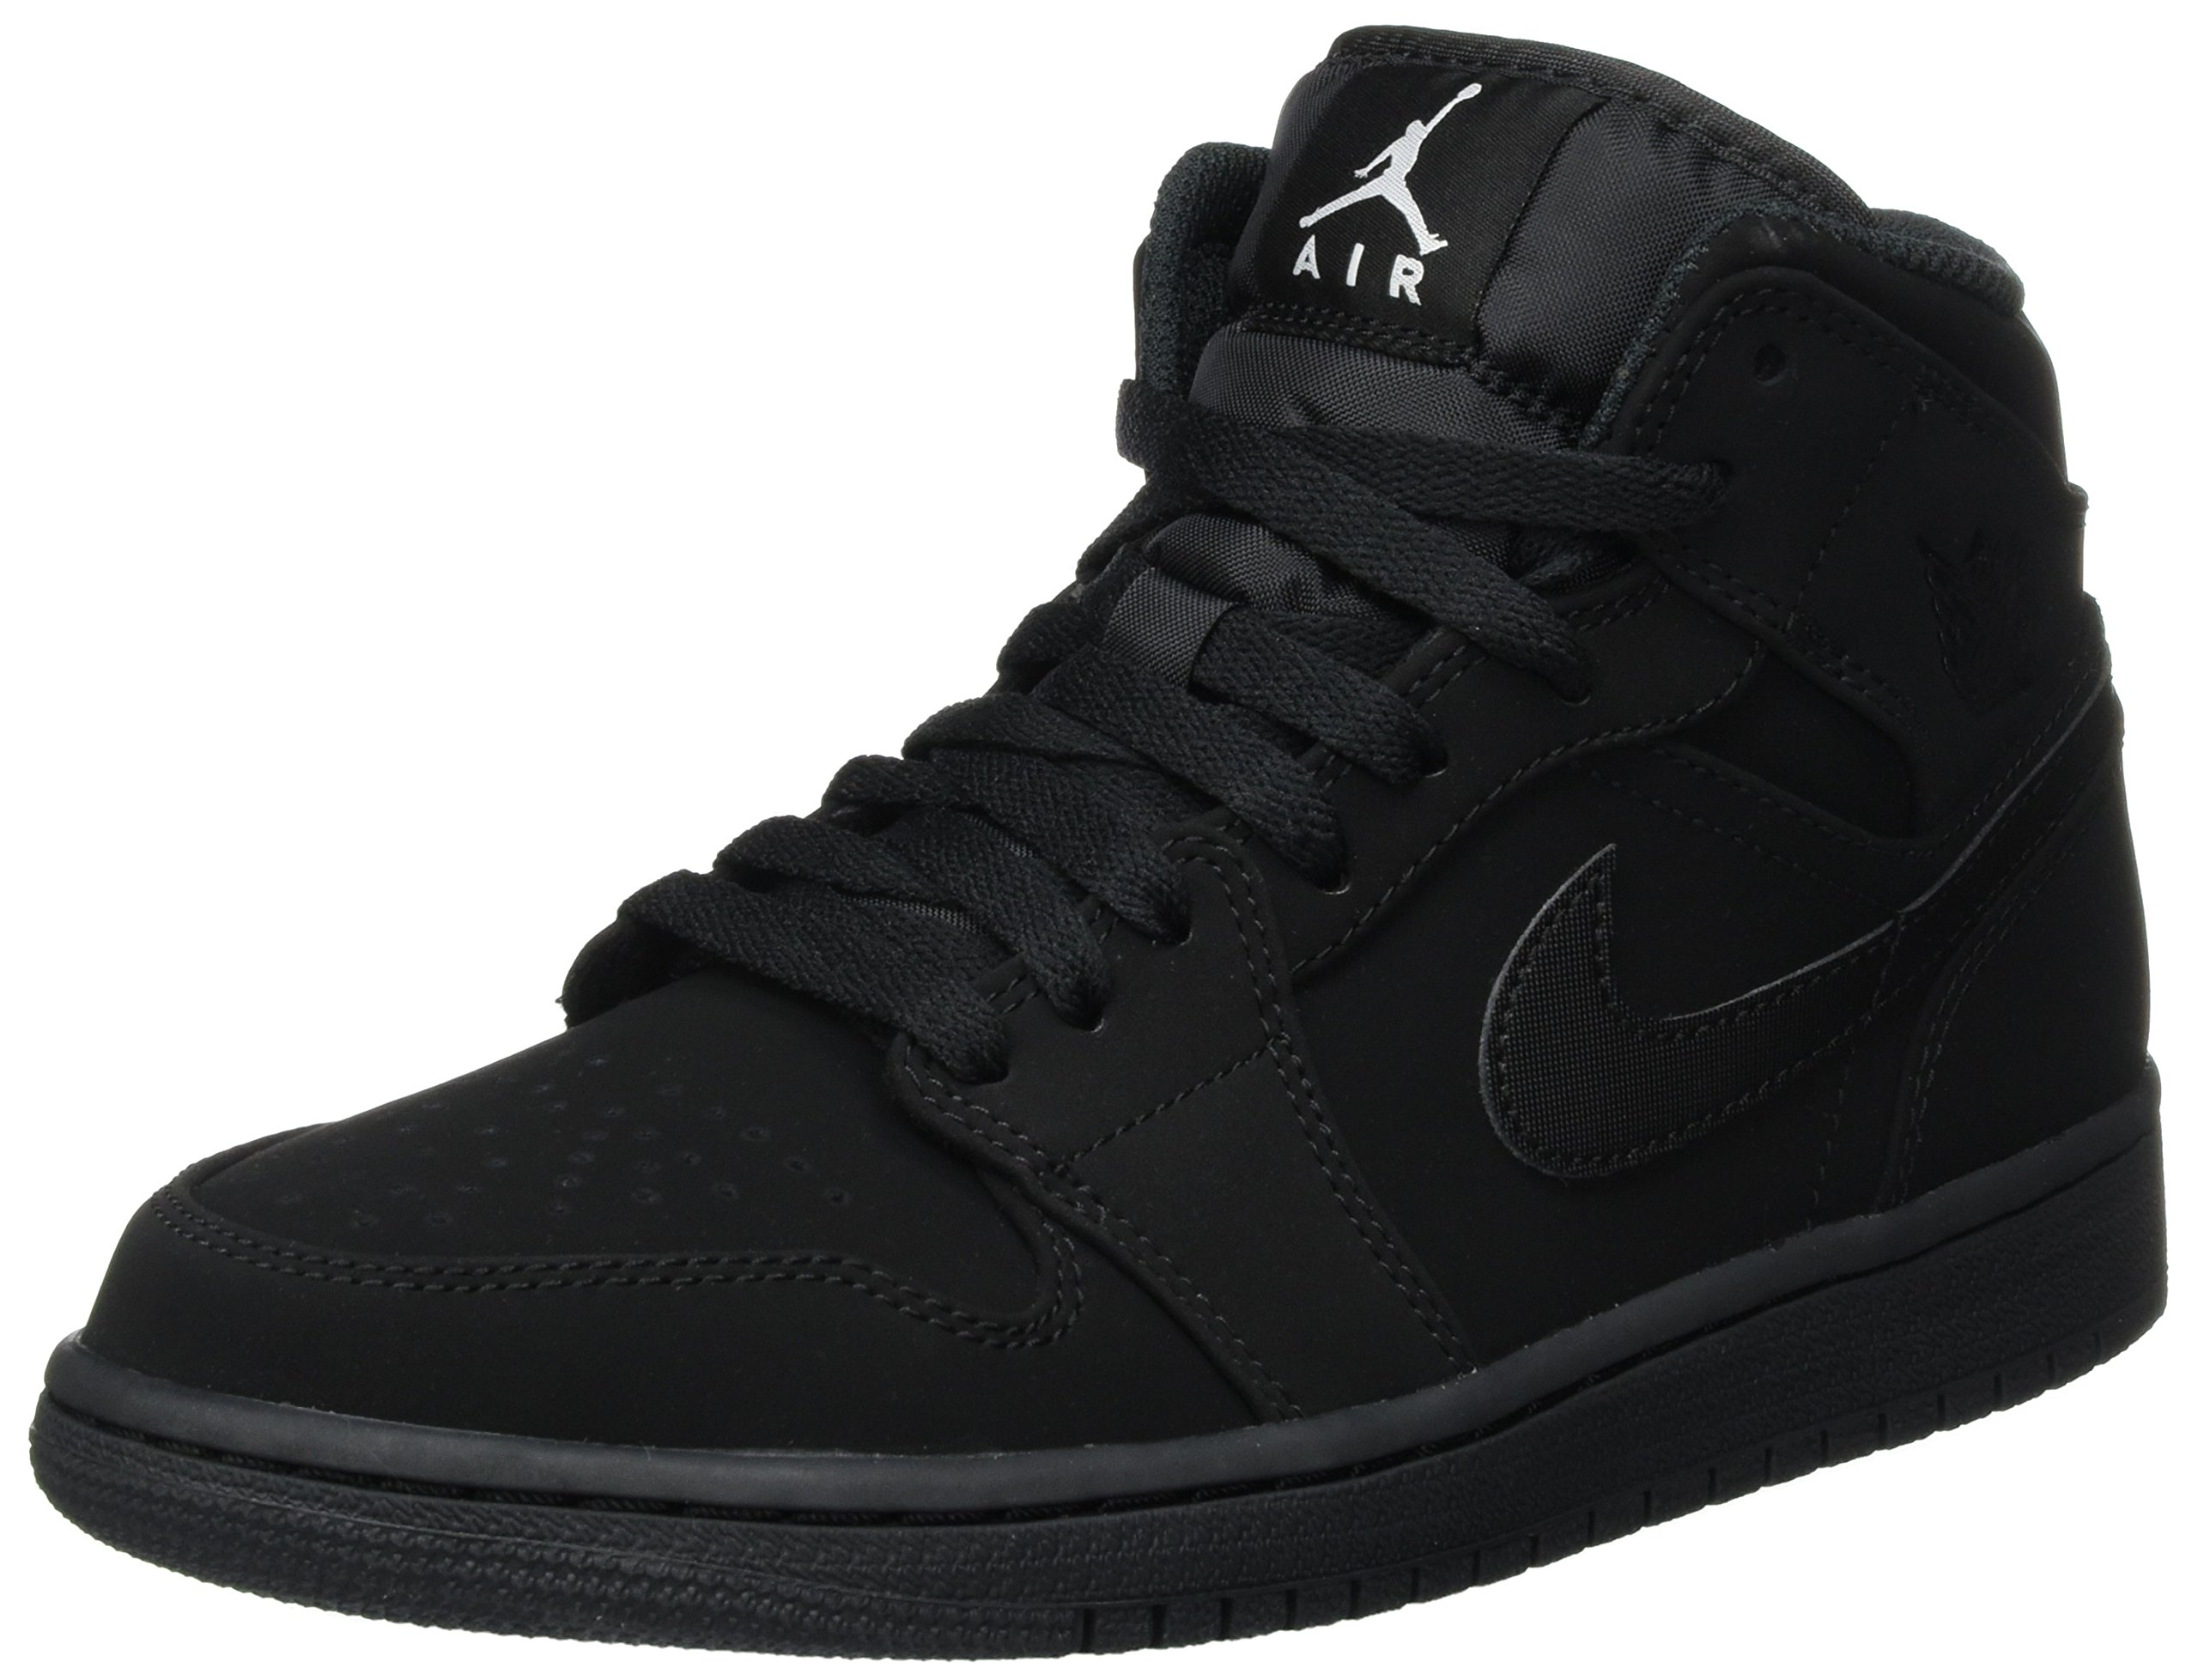 be6a4daac5f37e Galleon - Nike Men s Air Jordan 1 Retro Mid Basketball Shoes Black White-Black  Size 10.5 D(M)